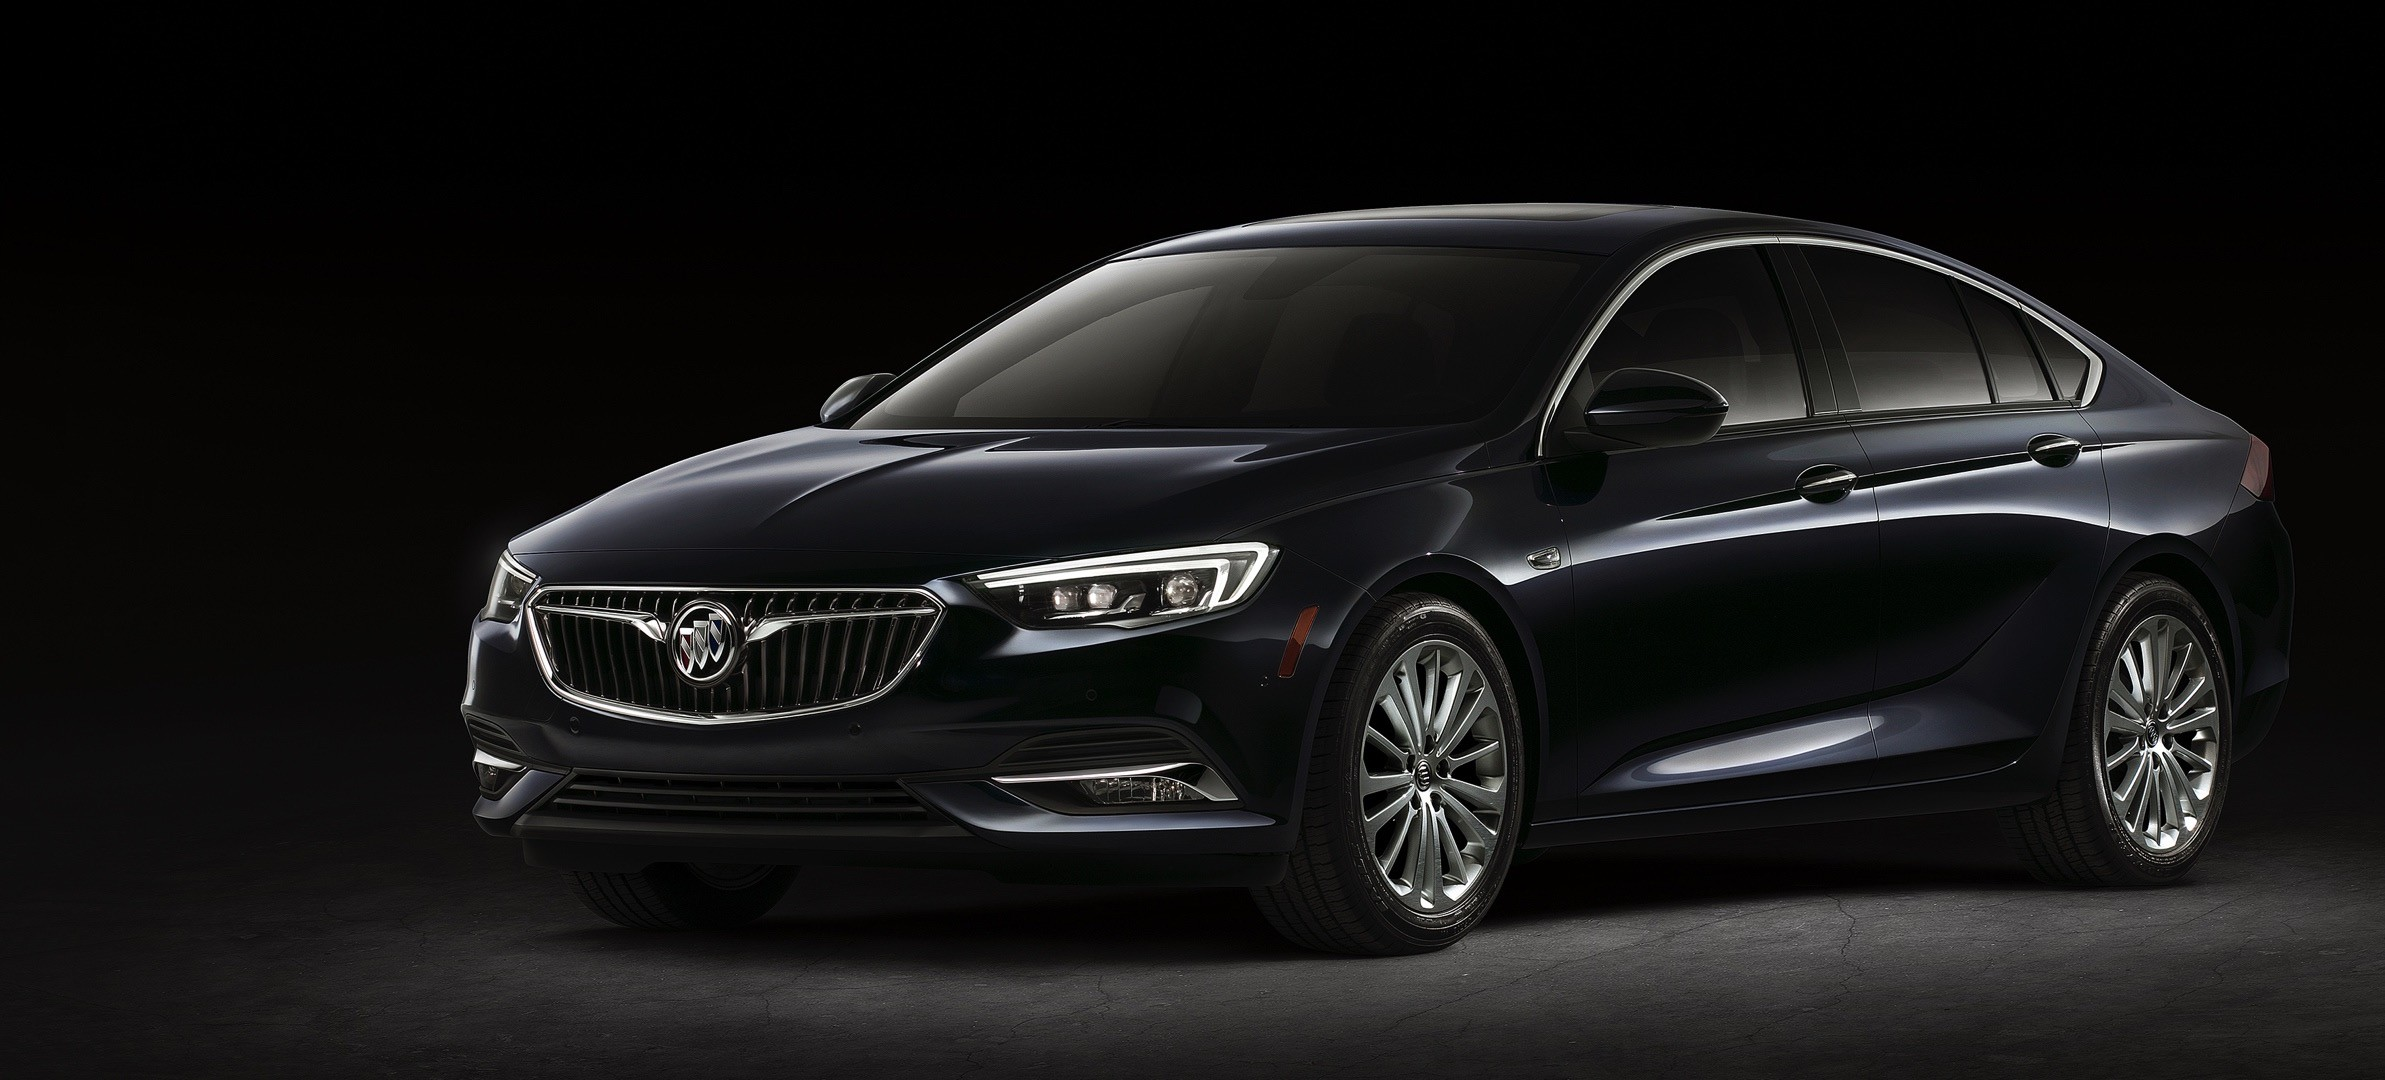 2018 Buick Regal GS Leak Suggests V6 Power And AWD ...